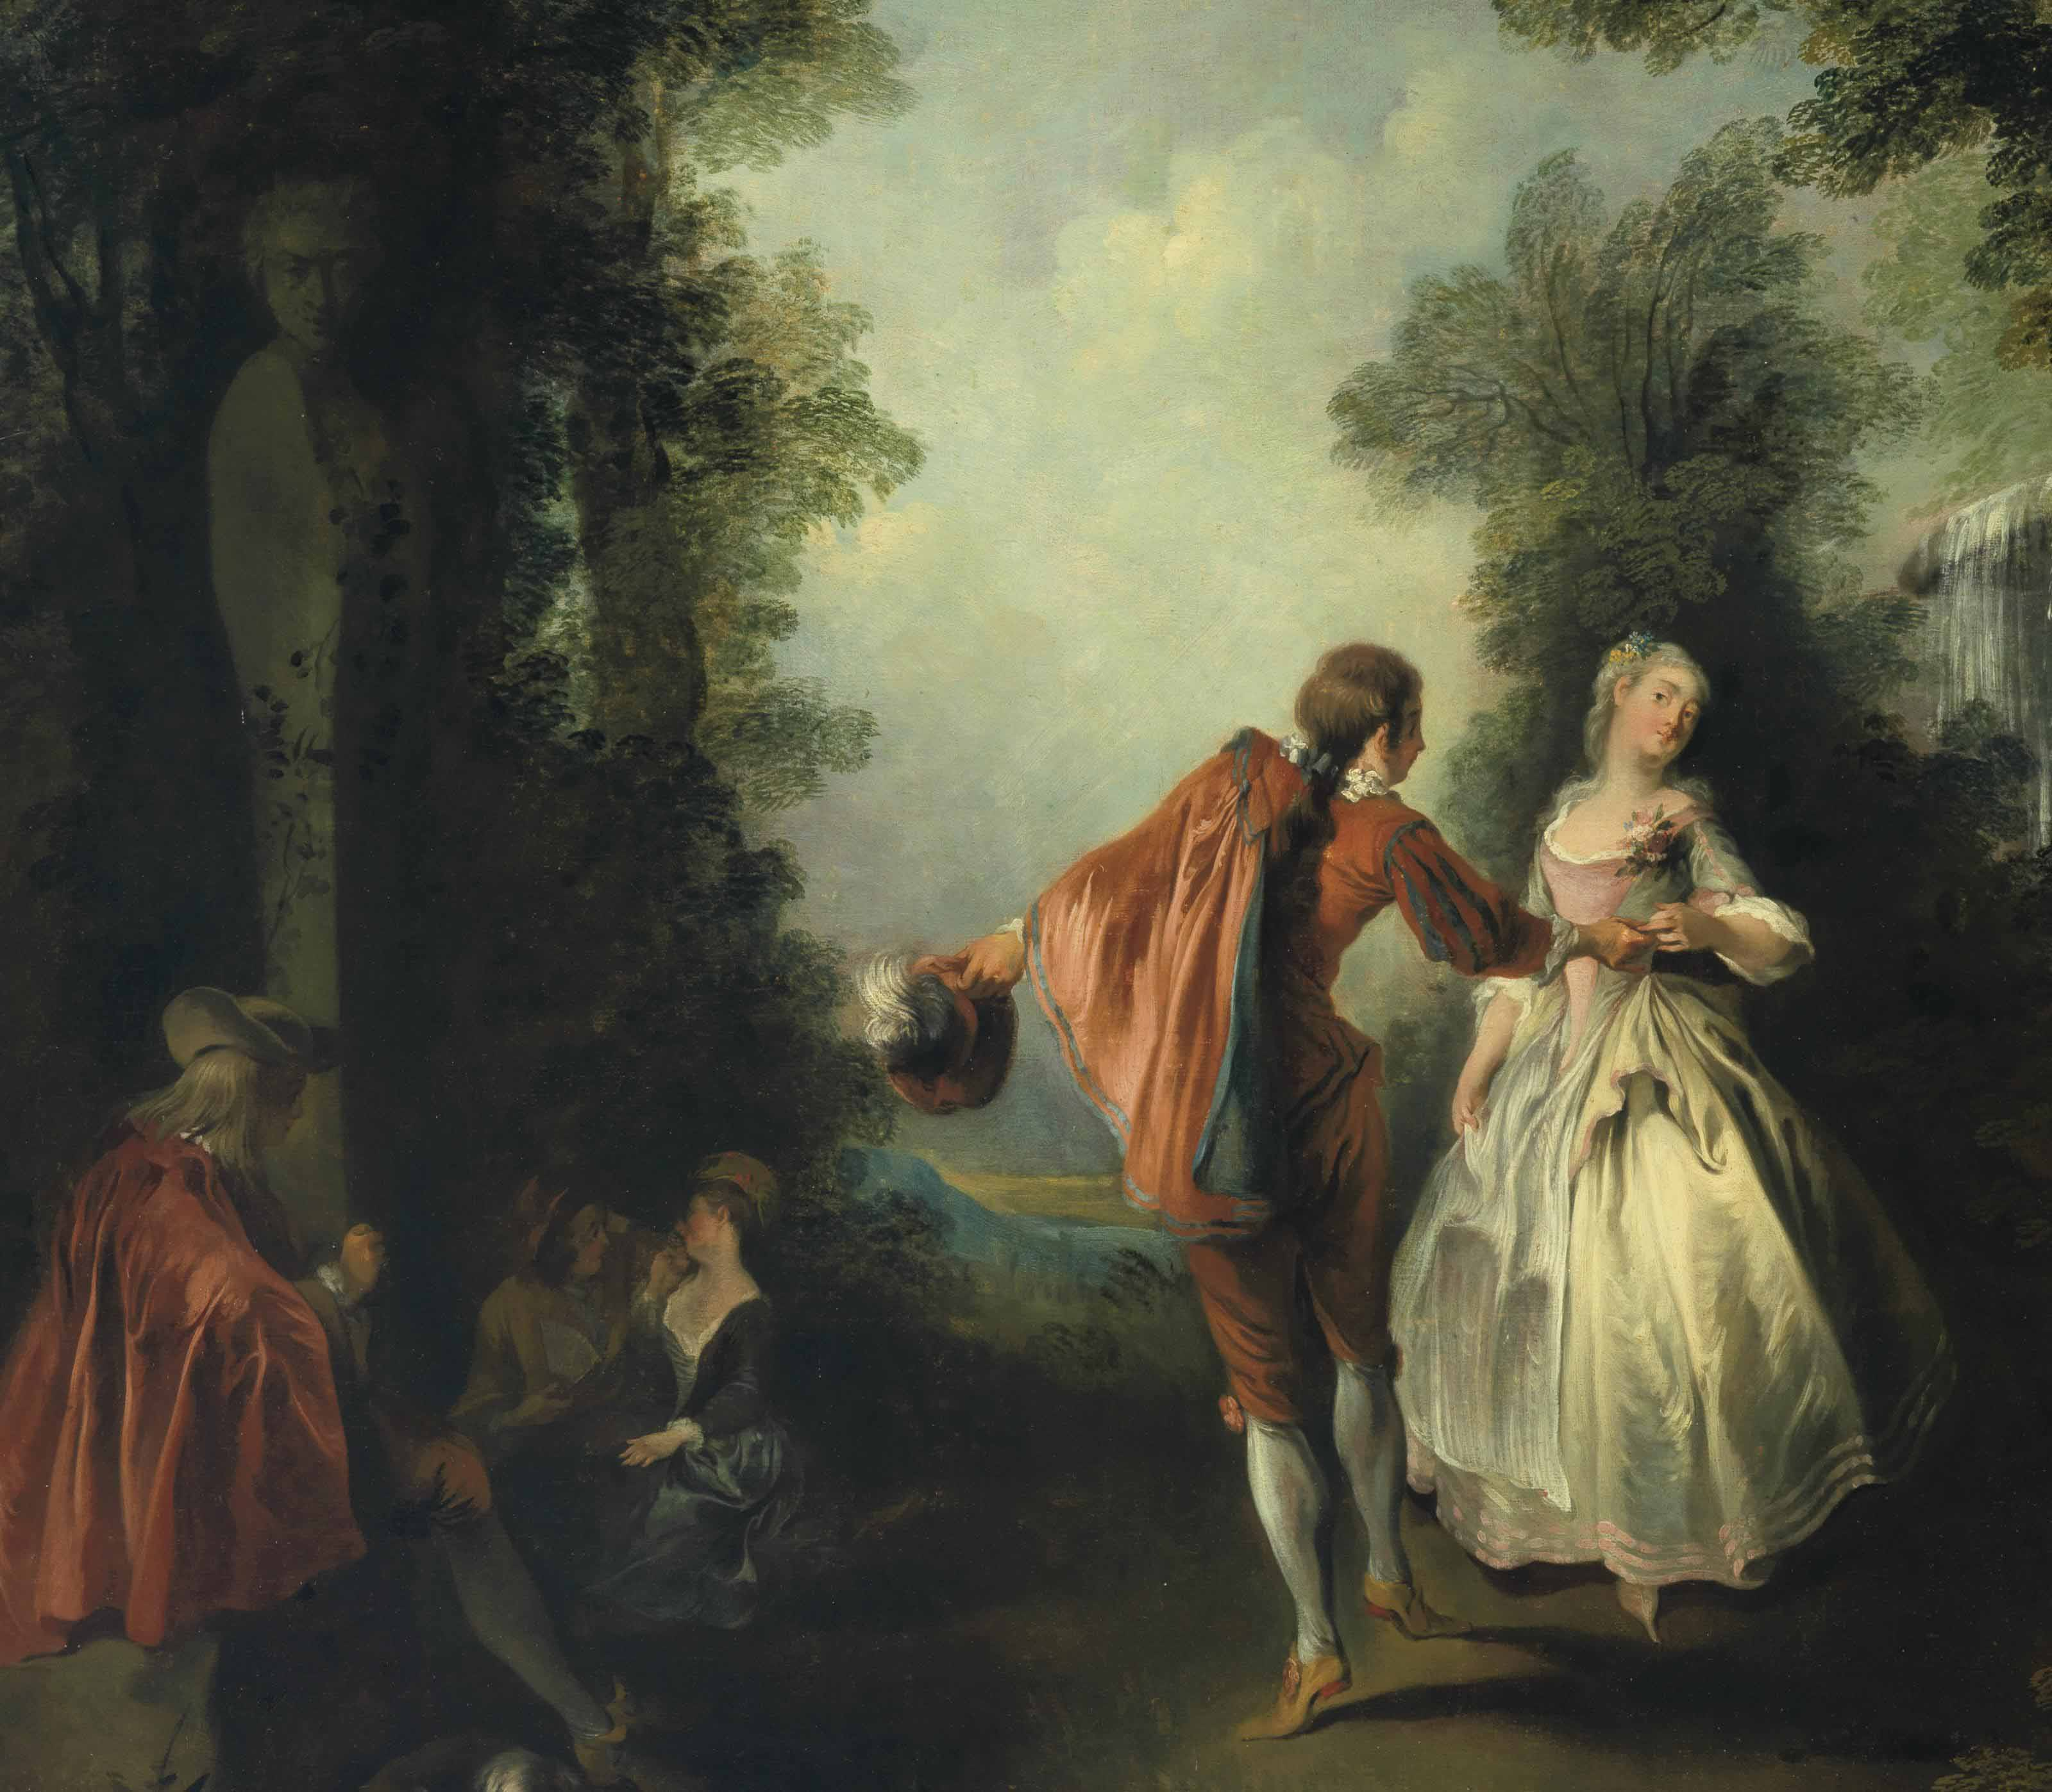 Elegant figures dancing in a wooded landscape